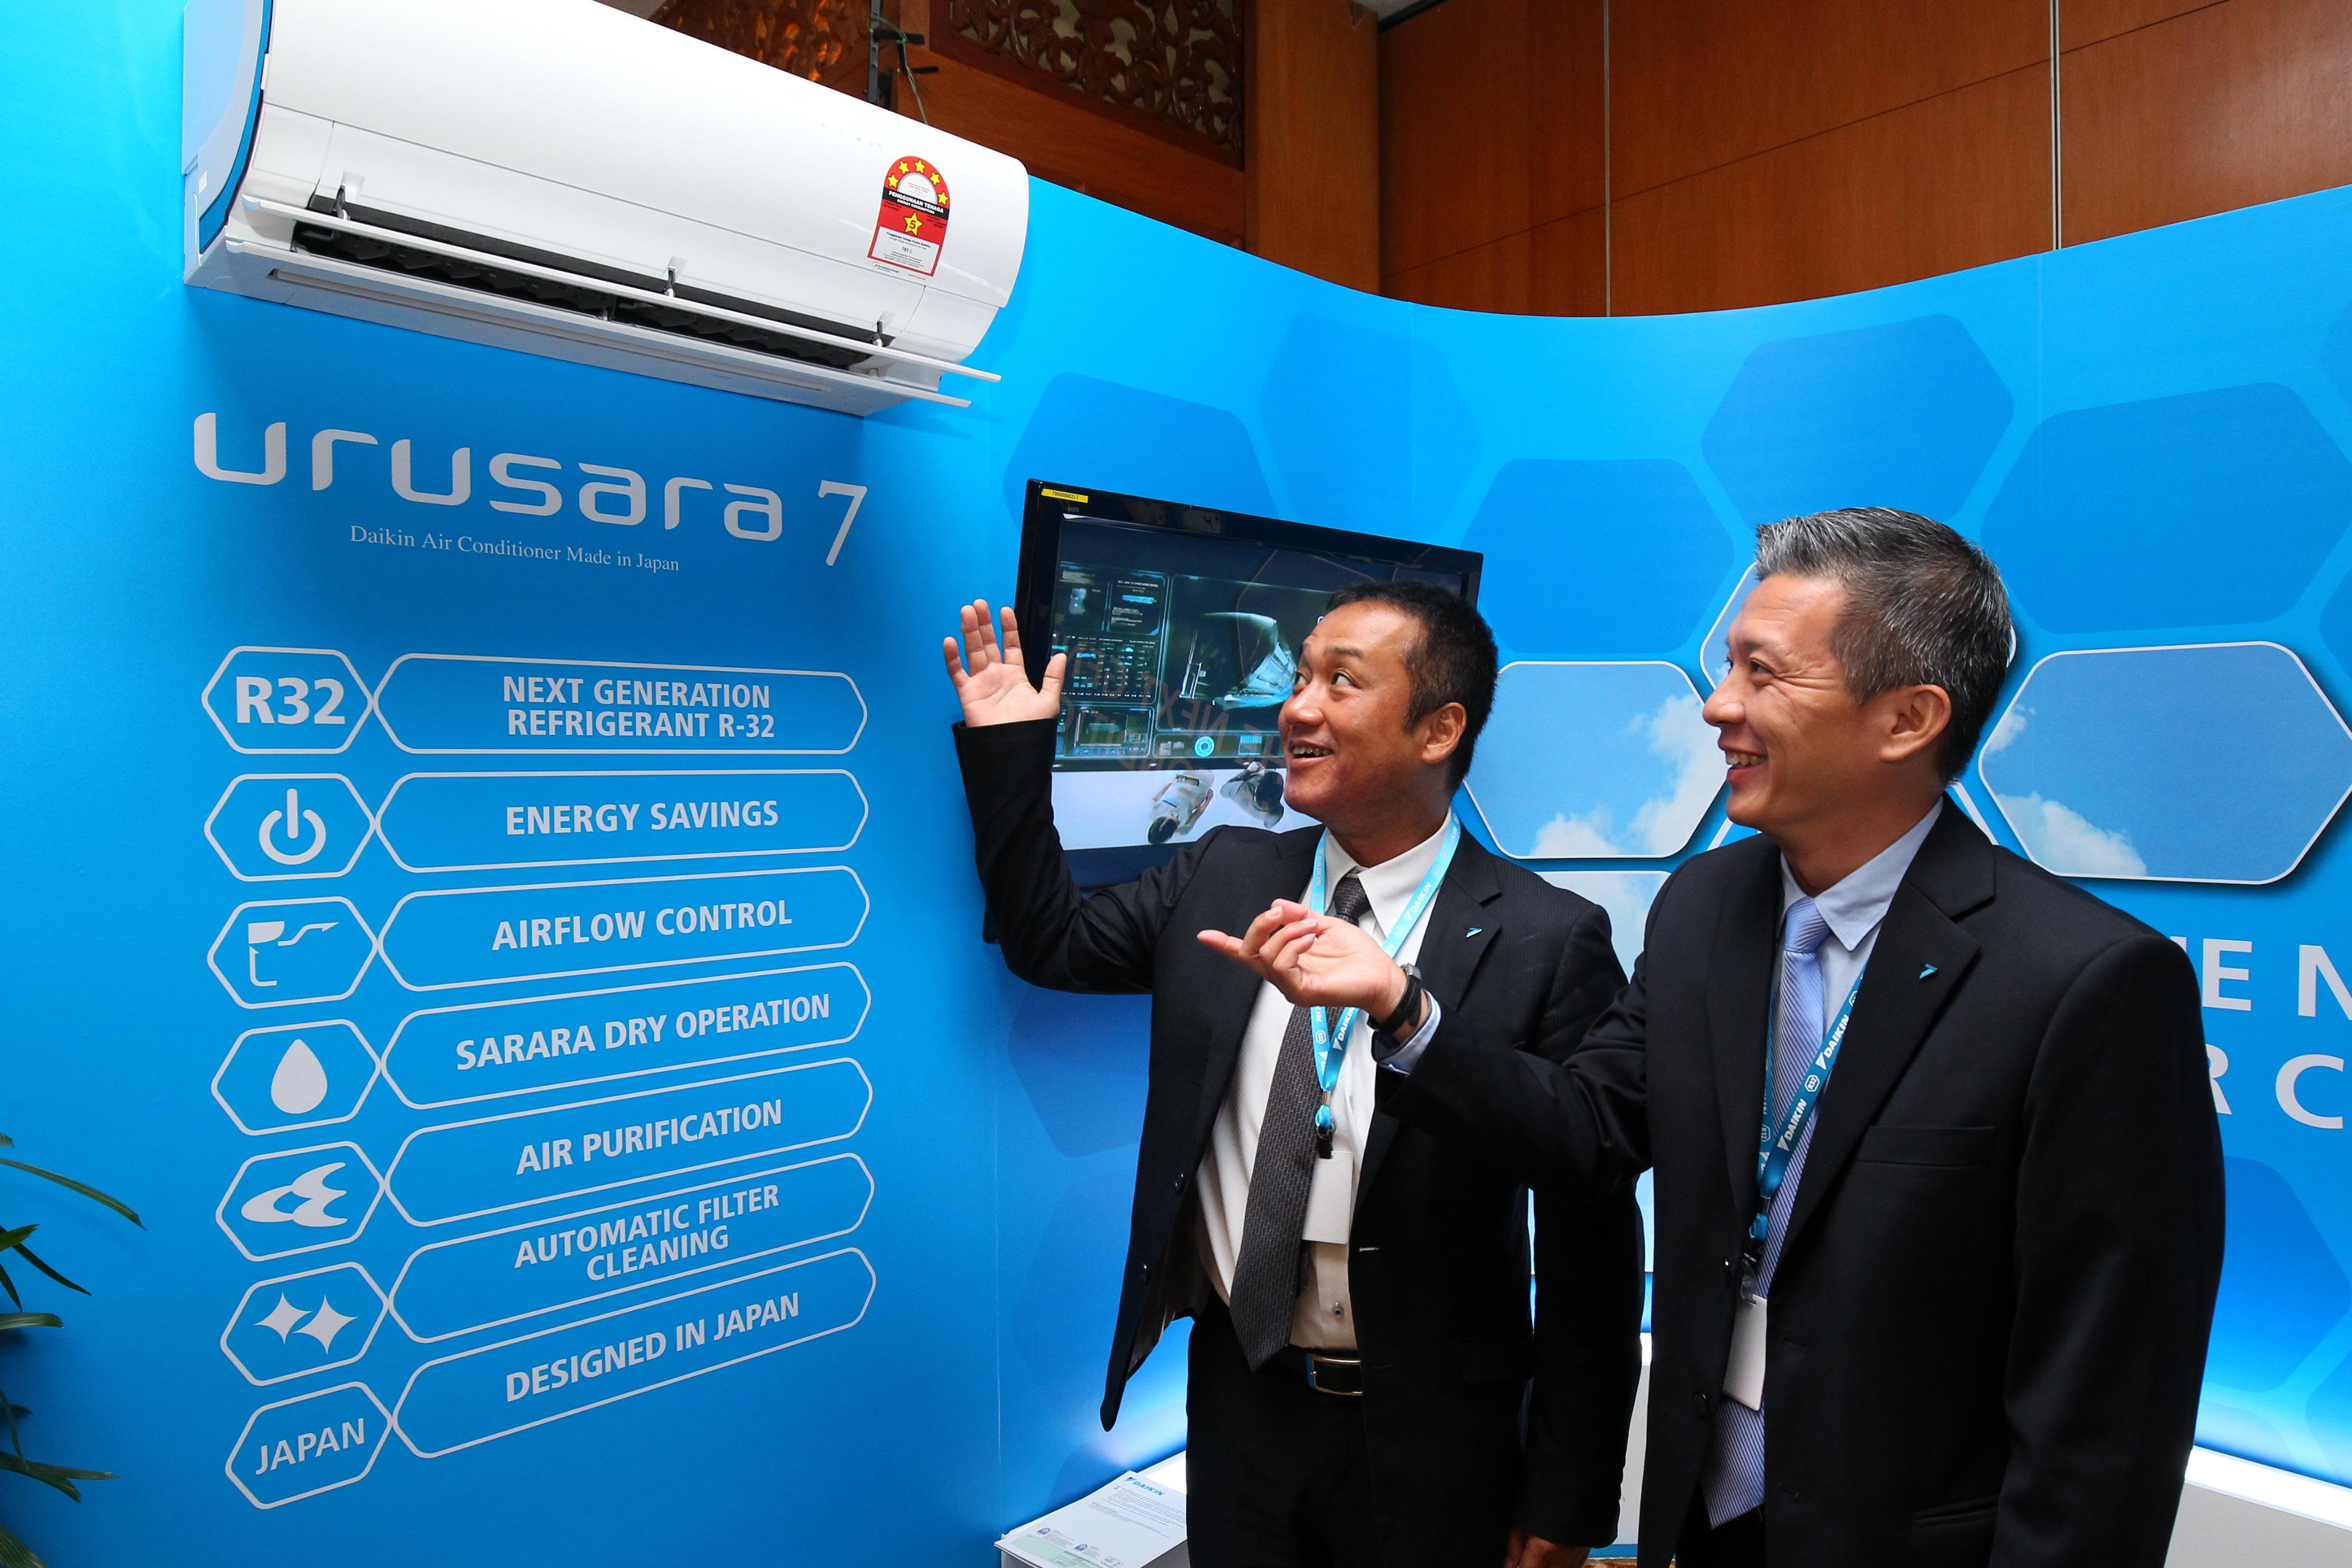 Mr Ryuta Hiramoto (left) and Mr Edwin Chai with the Urusara 7